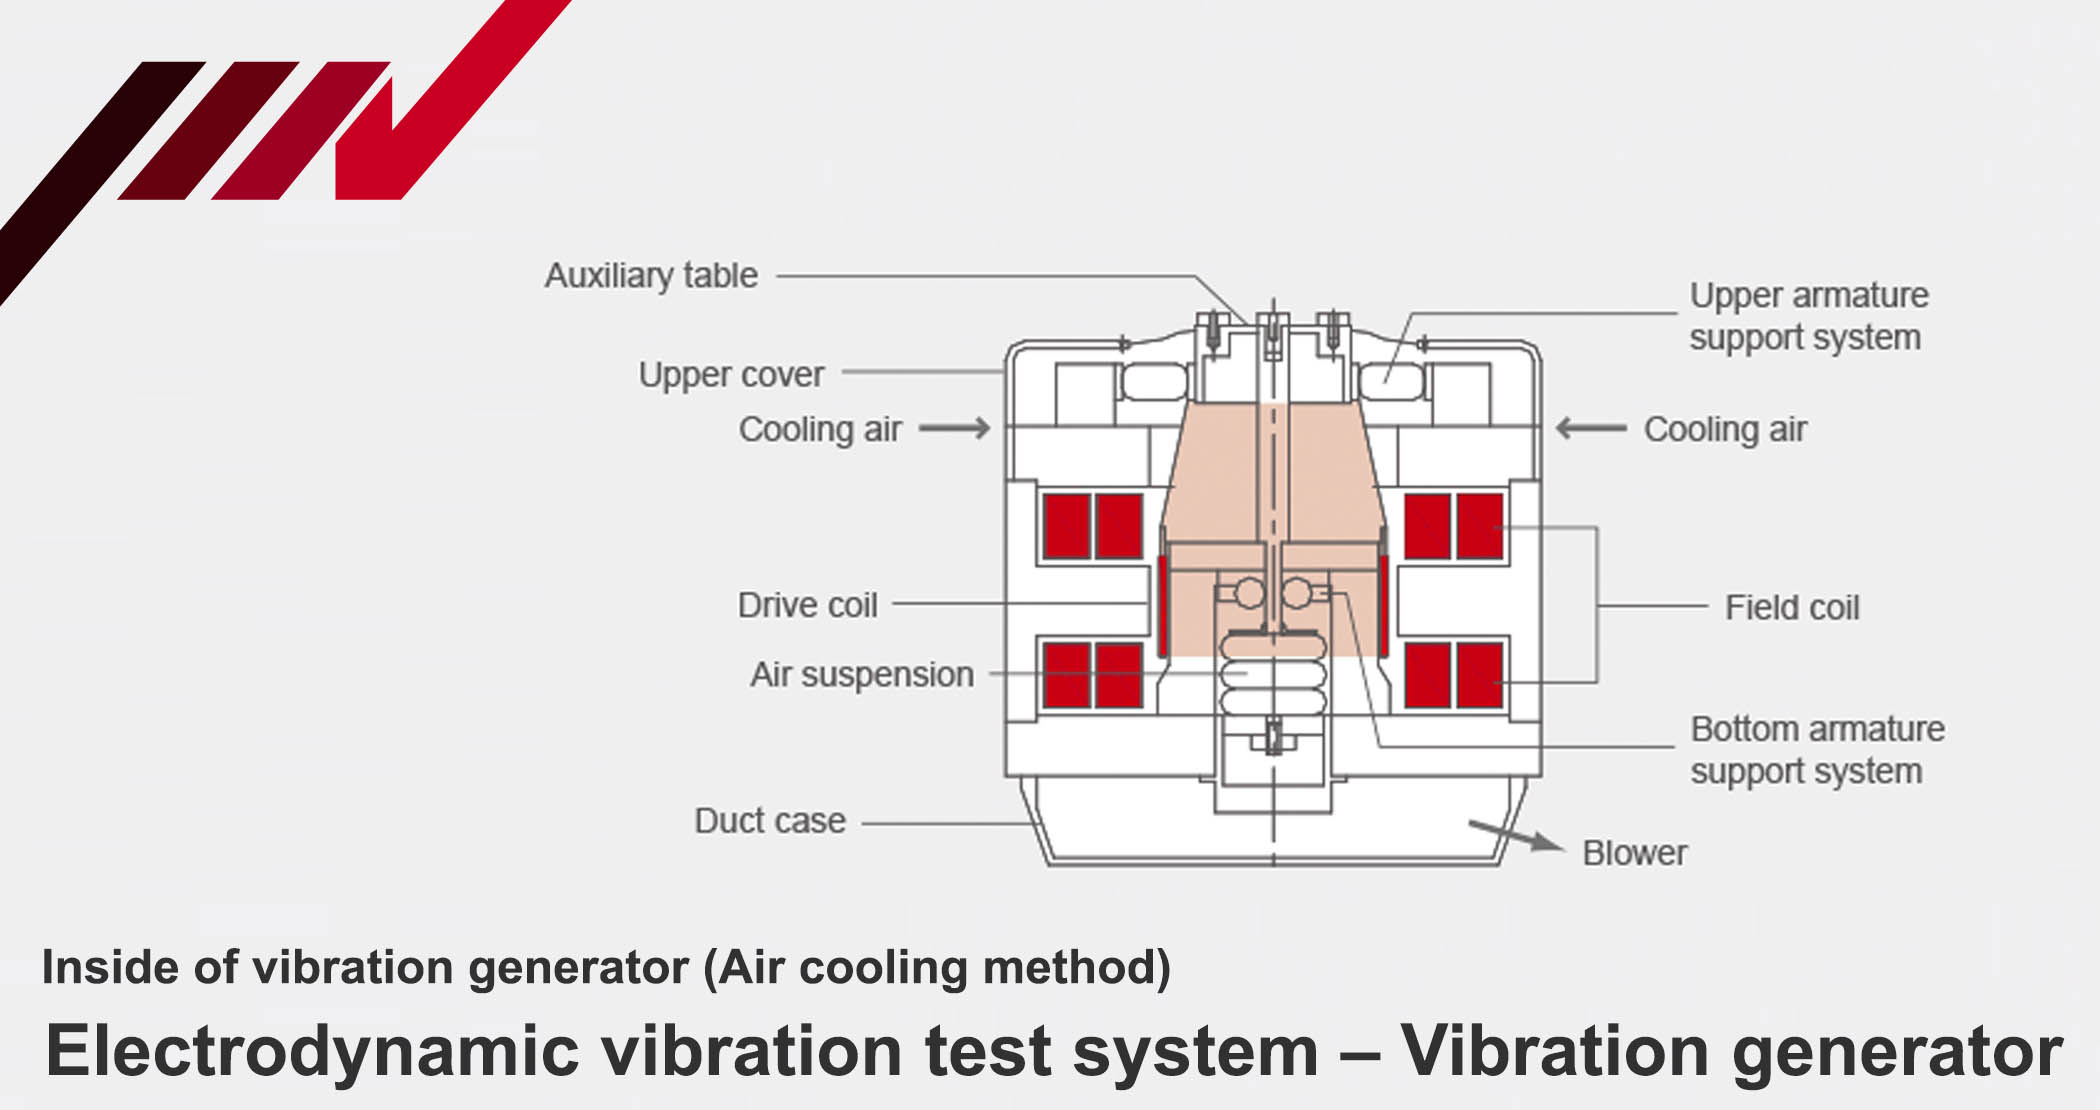 Inside of vibration generator, electrodynamic test system, IMV Corp.